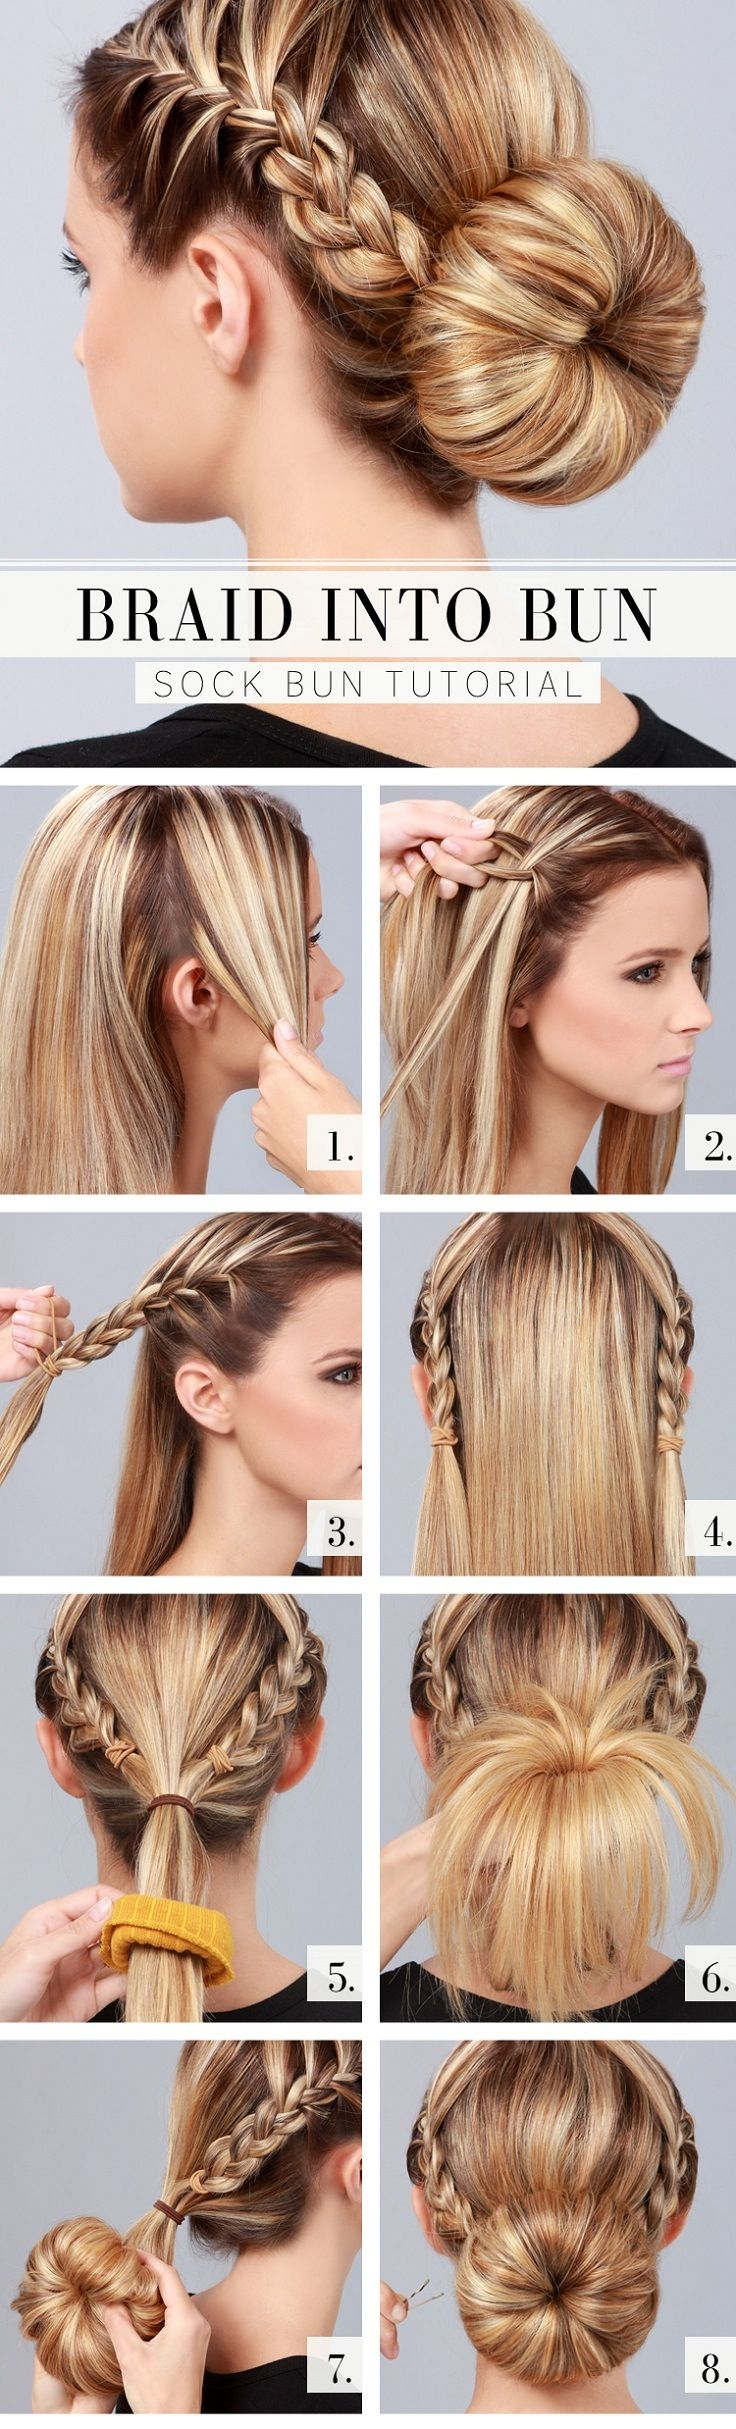 The perfect summer hair tutorial